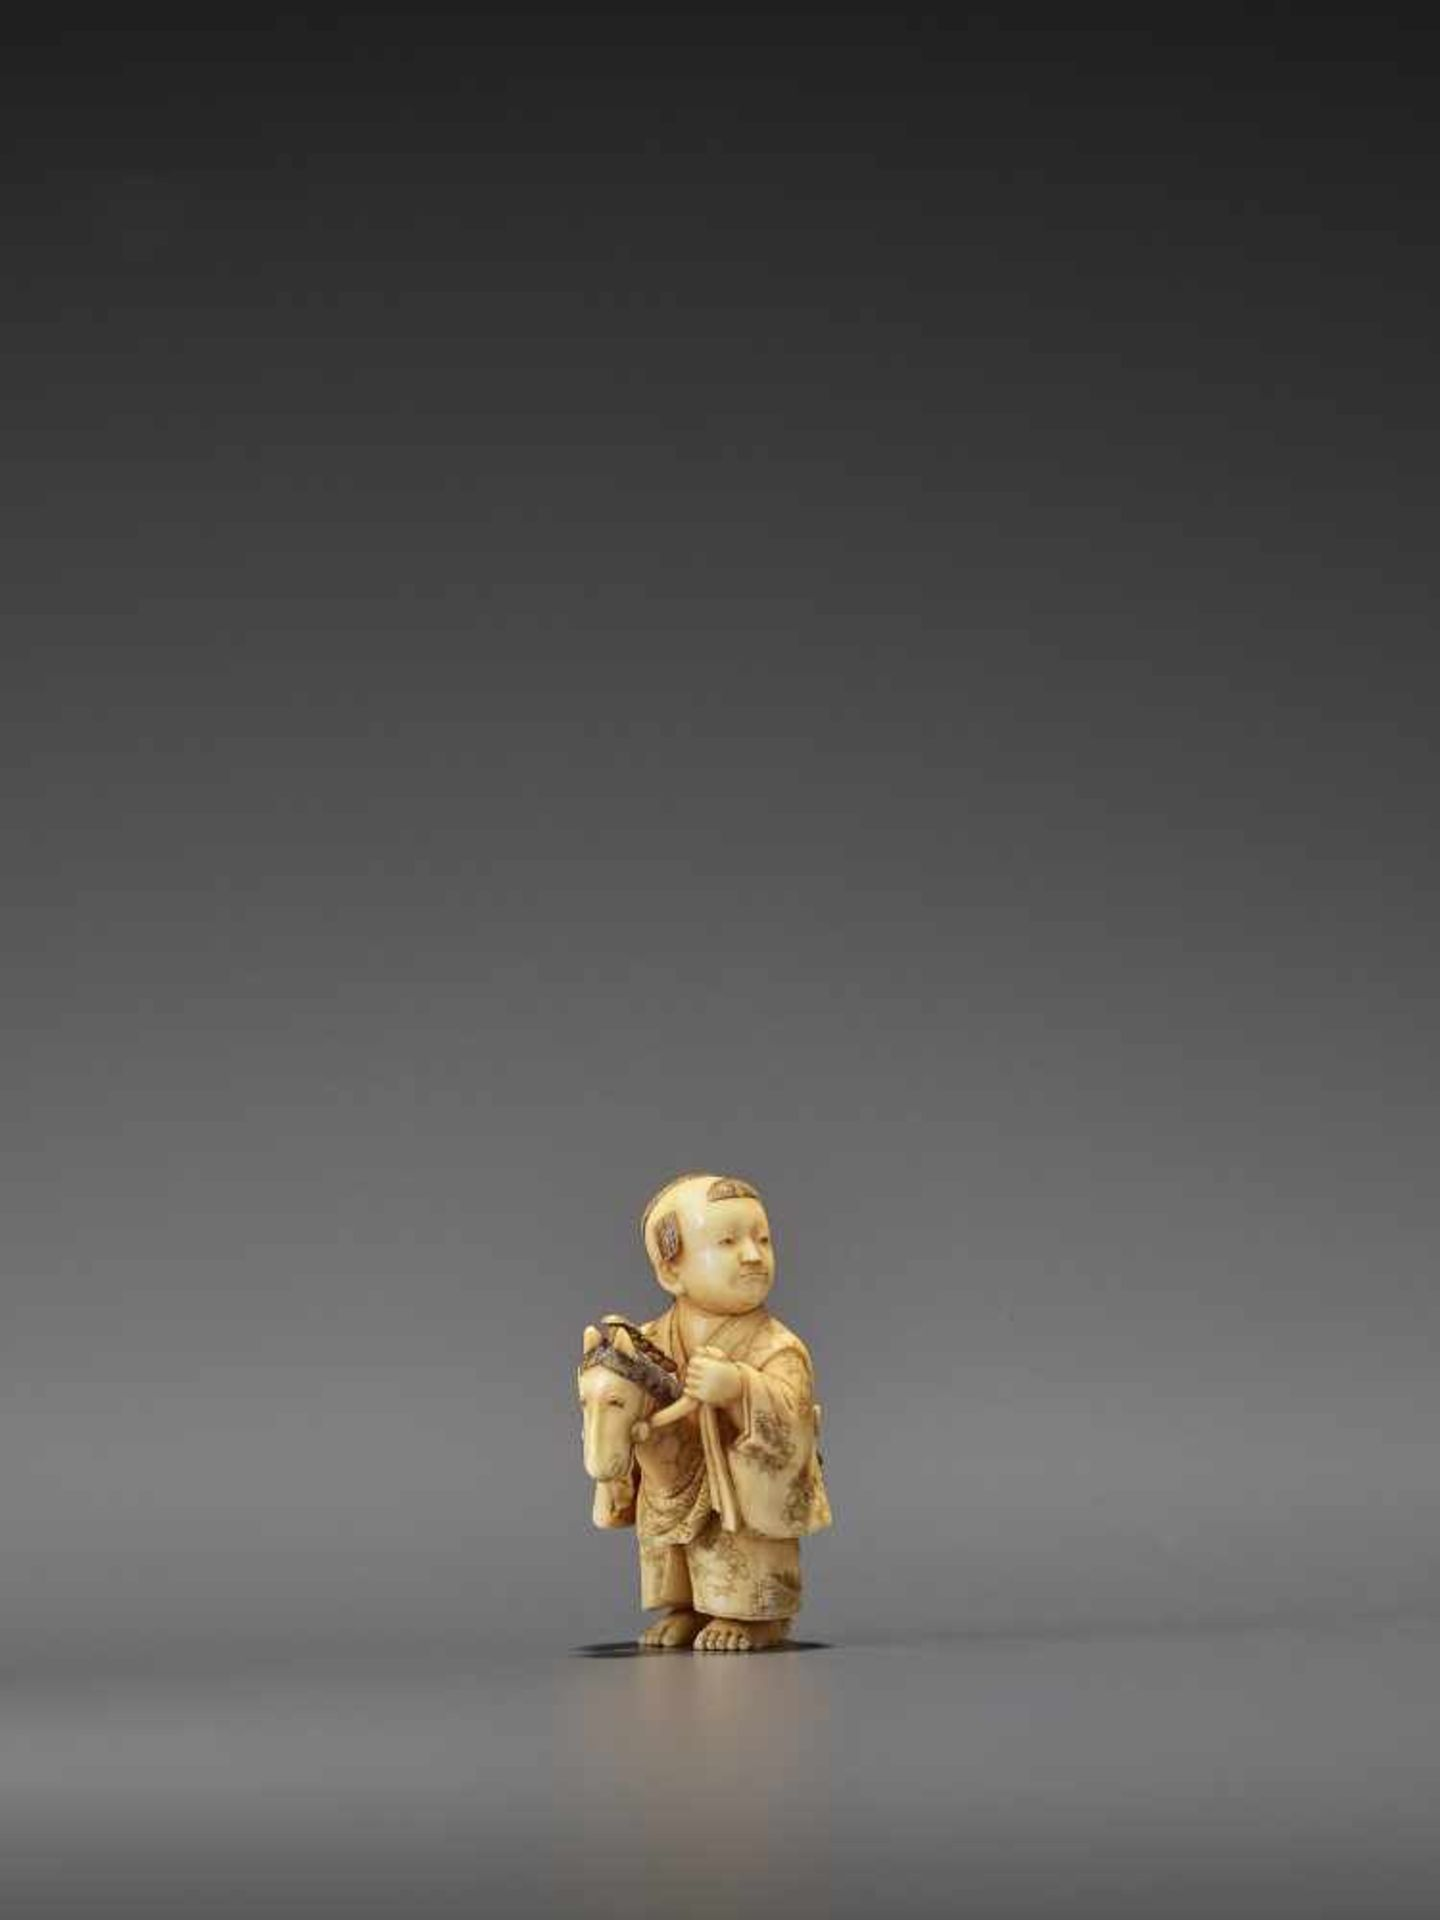 RYOMIN: A VERY FINE IVORY NETSUKE OF A BOY WITH HOBBY HORSE By Ono Ryomin, signed Ryomin with - Image 8 of 11